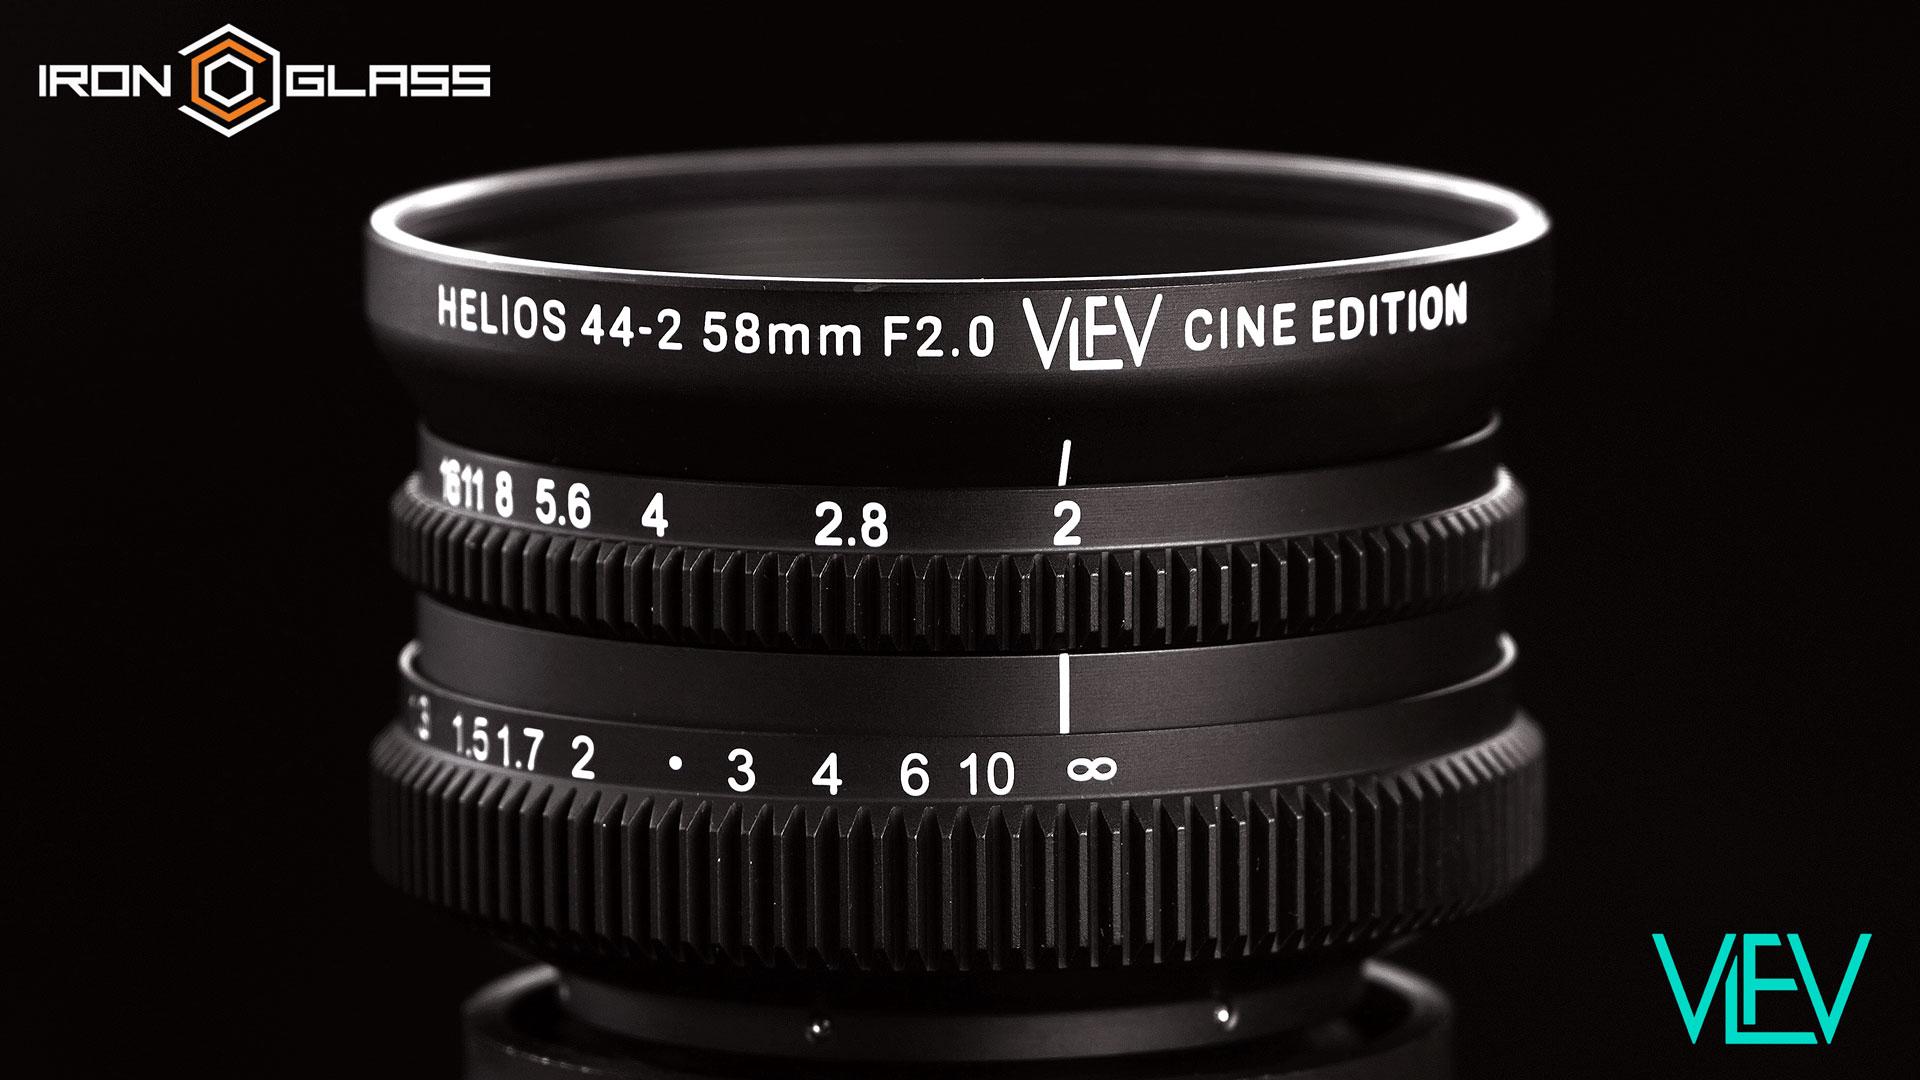 SPECIAL ANNOUNCEMENT: Helios 44-2 VLFV Cine Edition | Rehoused by IronGlass